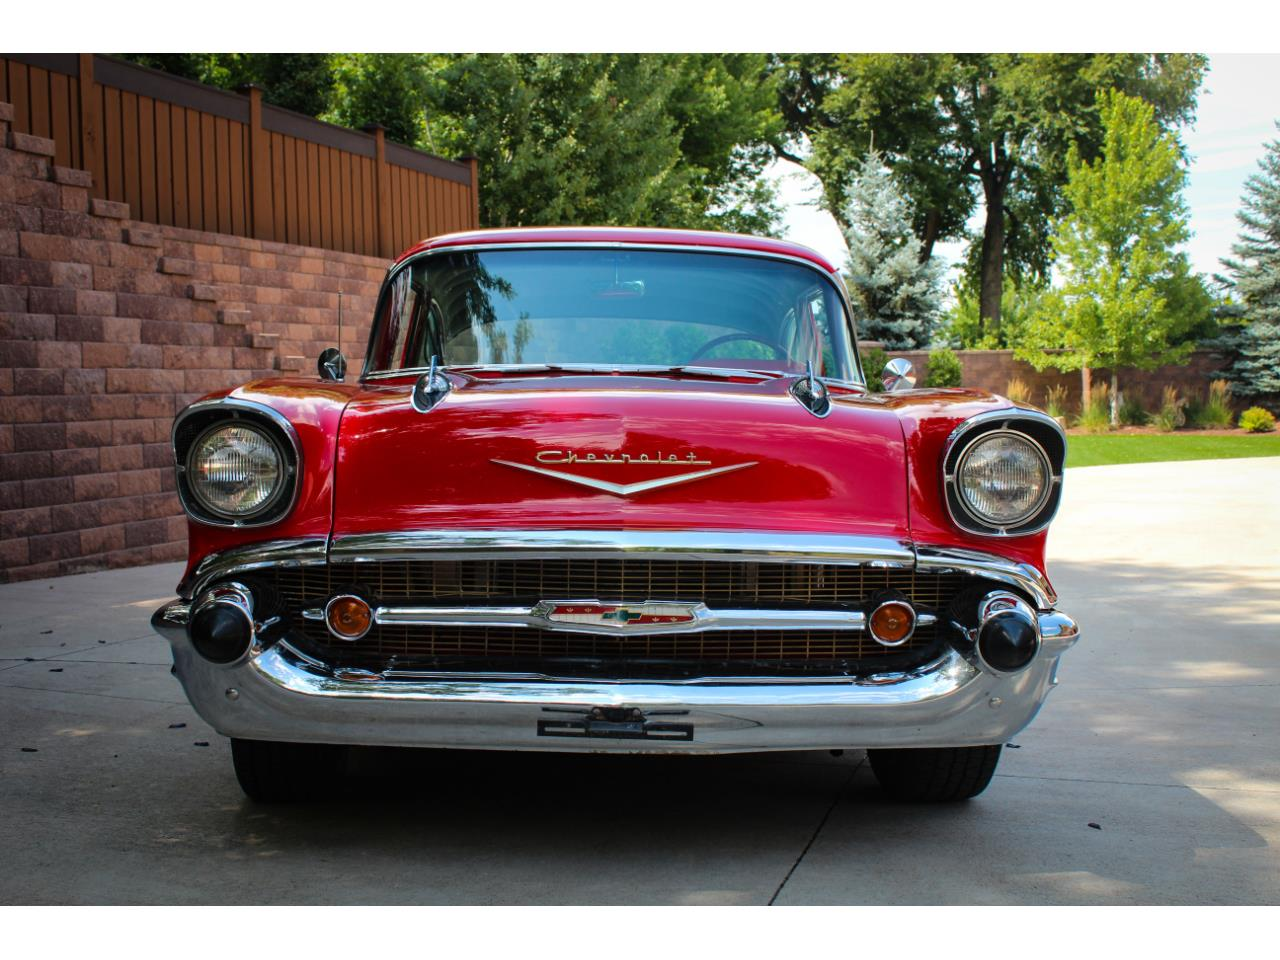 1957 Chevrolet Bel Air for sale in Greeley, CO – photo 2